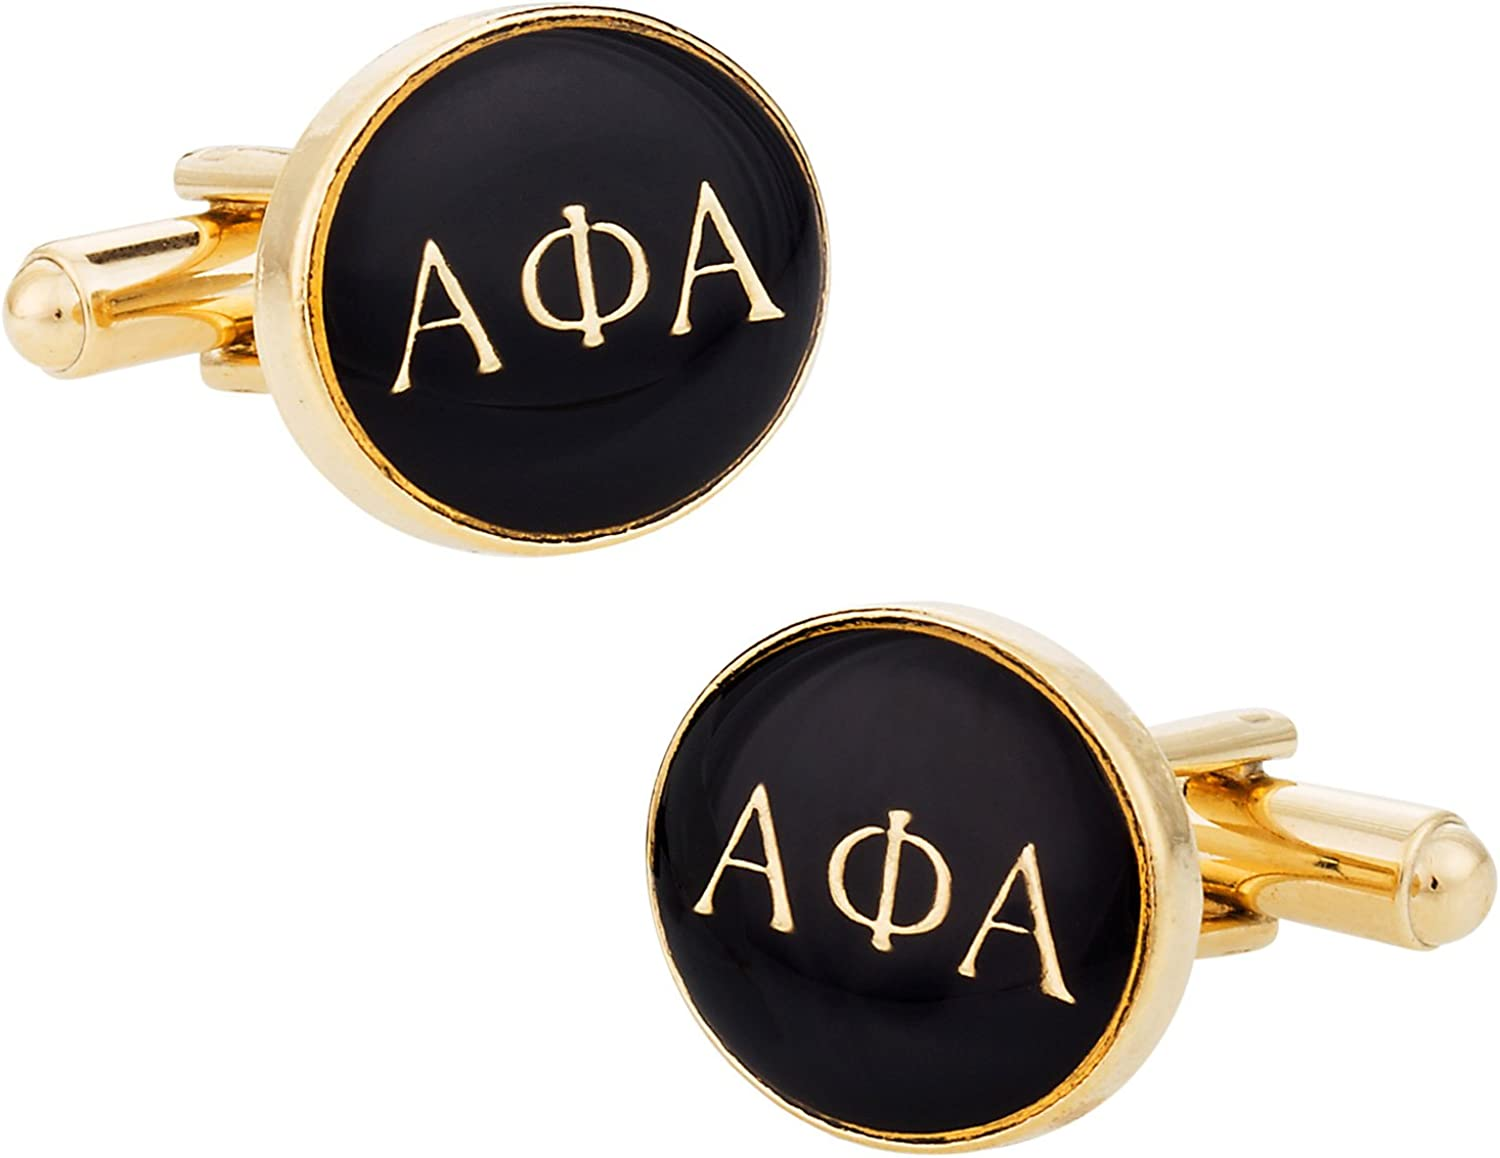 Cuff-Daddy Alpha Phi Alpha Black Gold Cuff Links - One Pair with Presentation Gift Box